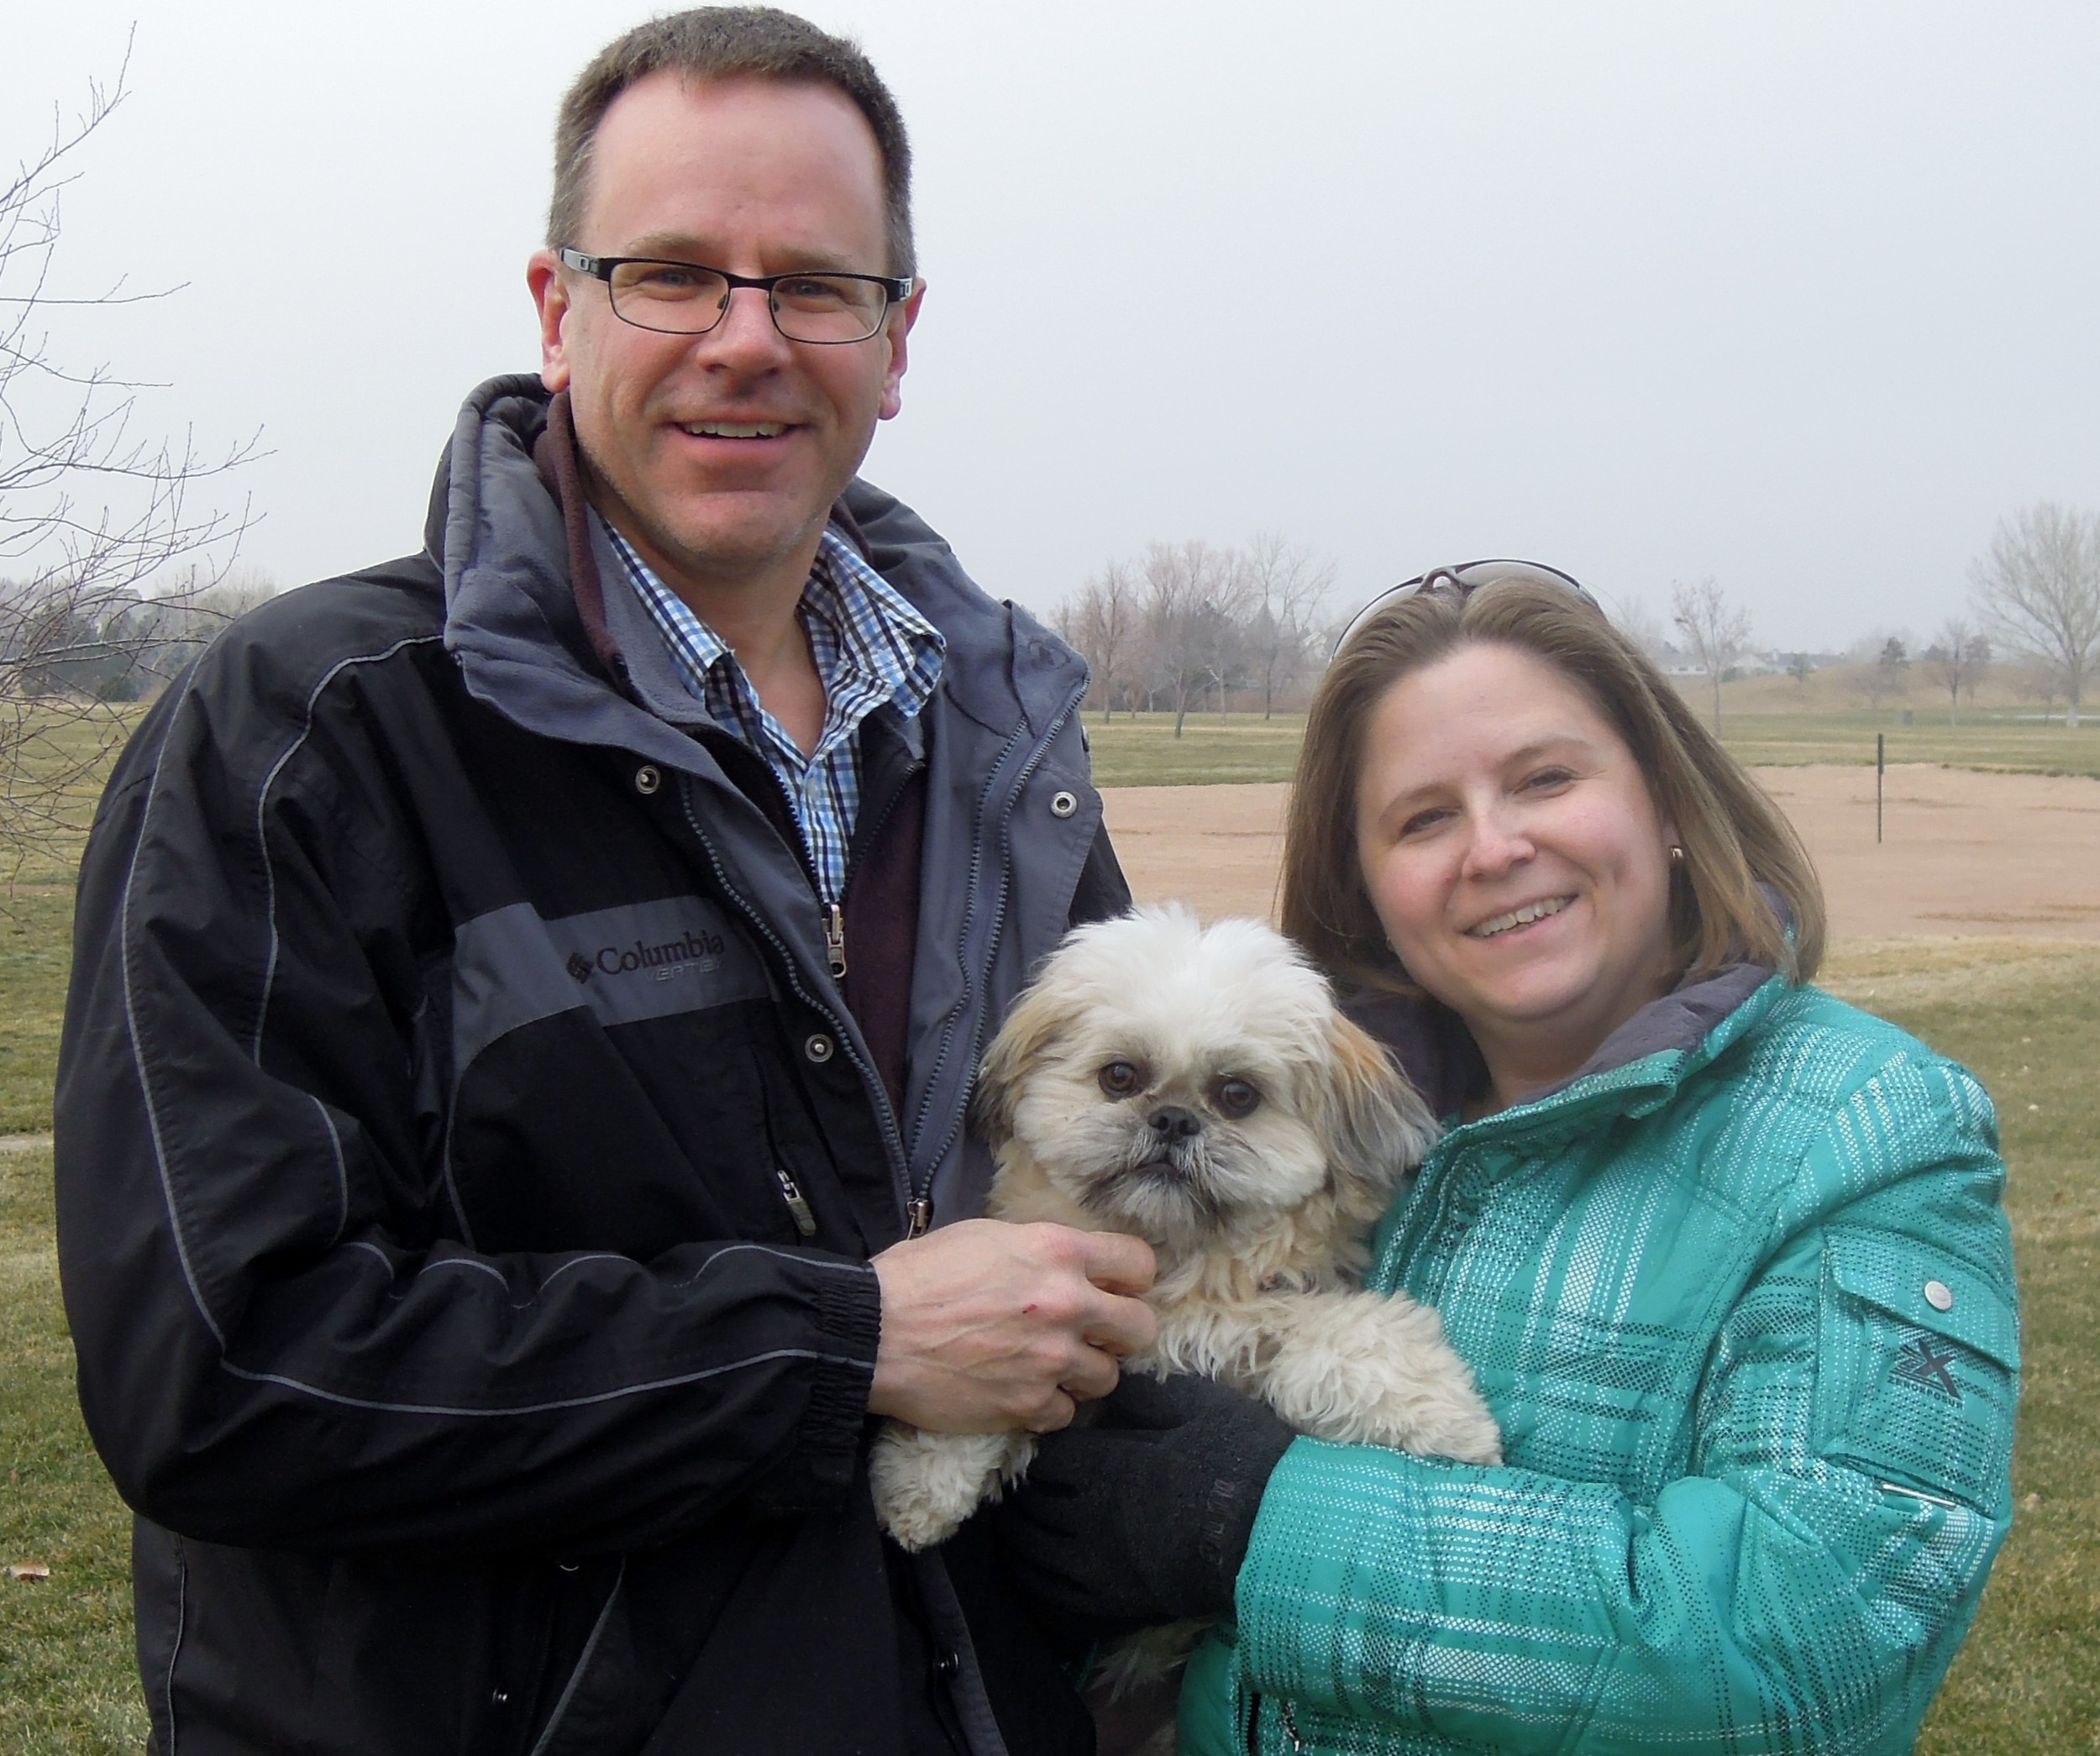 Castle Rock husband-and-wife Morris Hansen and Denise Waggoner hold Lilo during one of her rare still moments at Highlands Ranch's Heritage Regional Park.